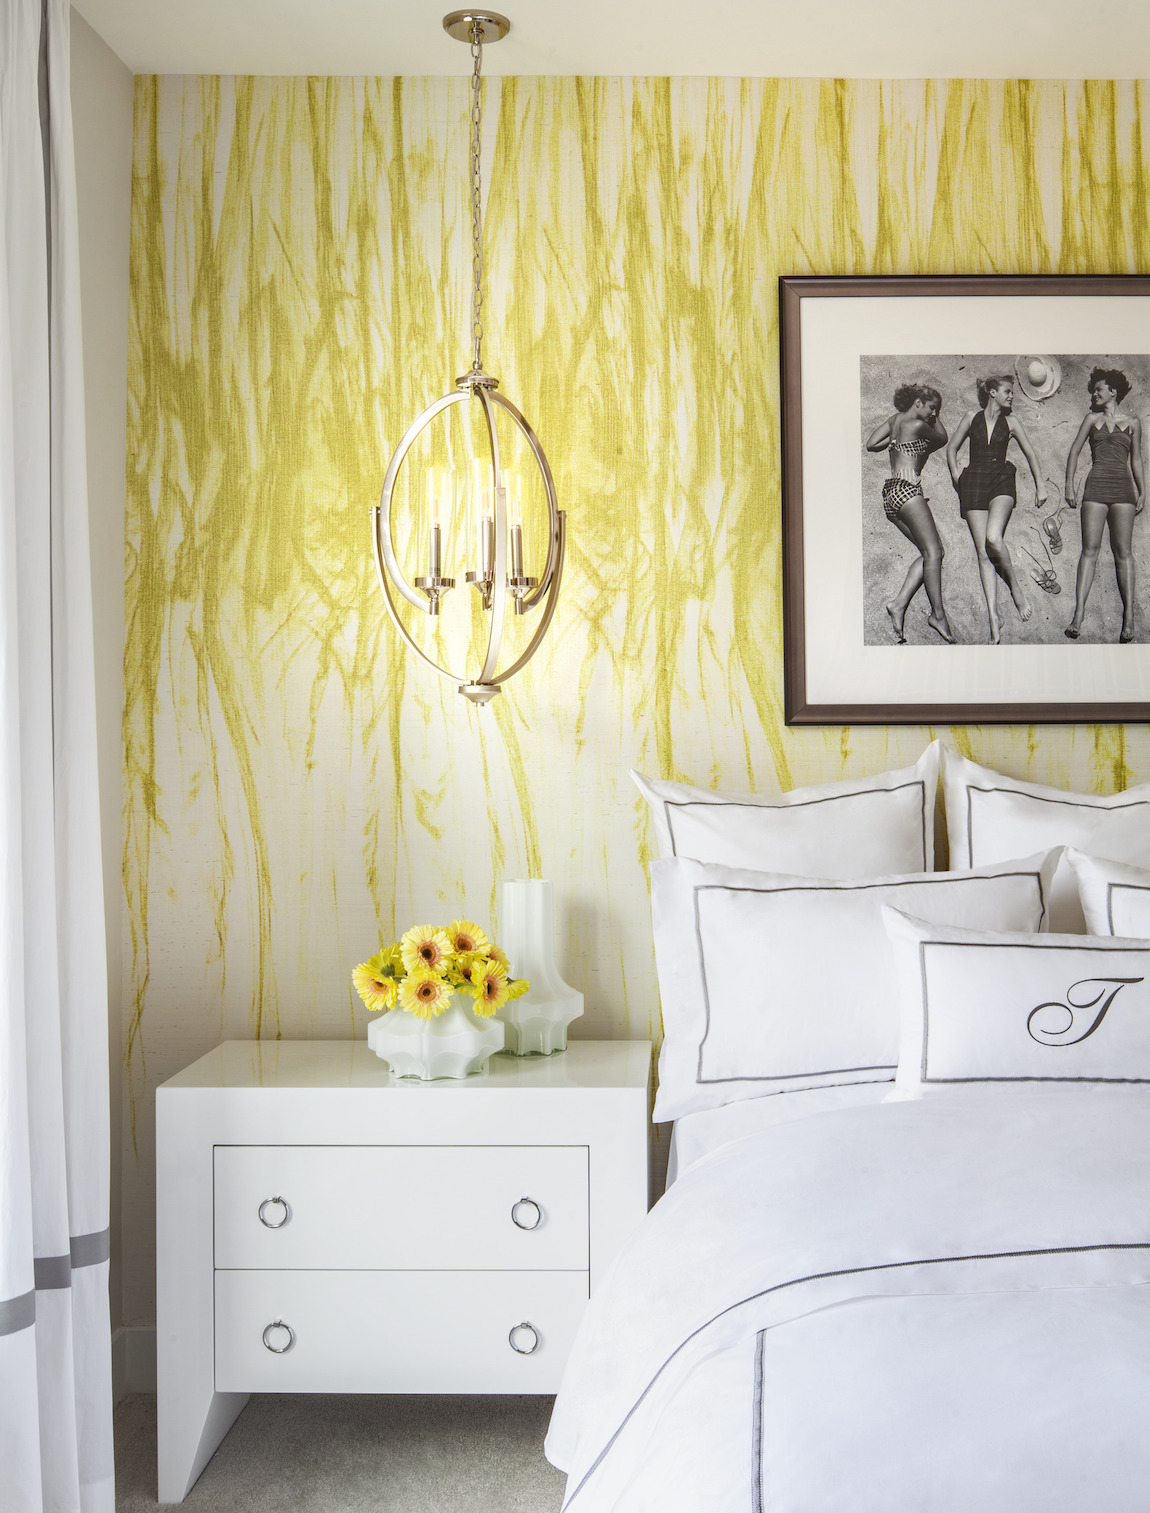 Bedroom featuring bold yellow walls and flowers that accentuate color scheme